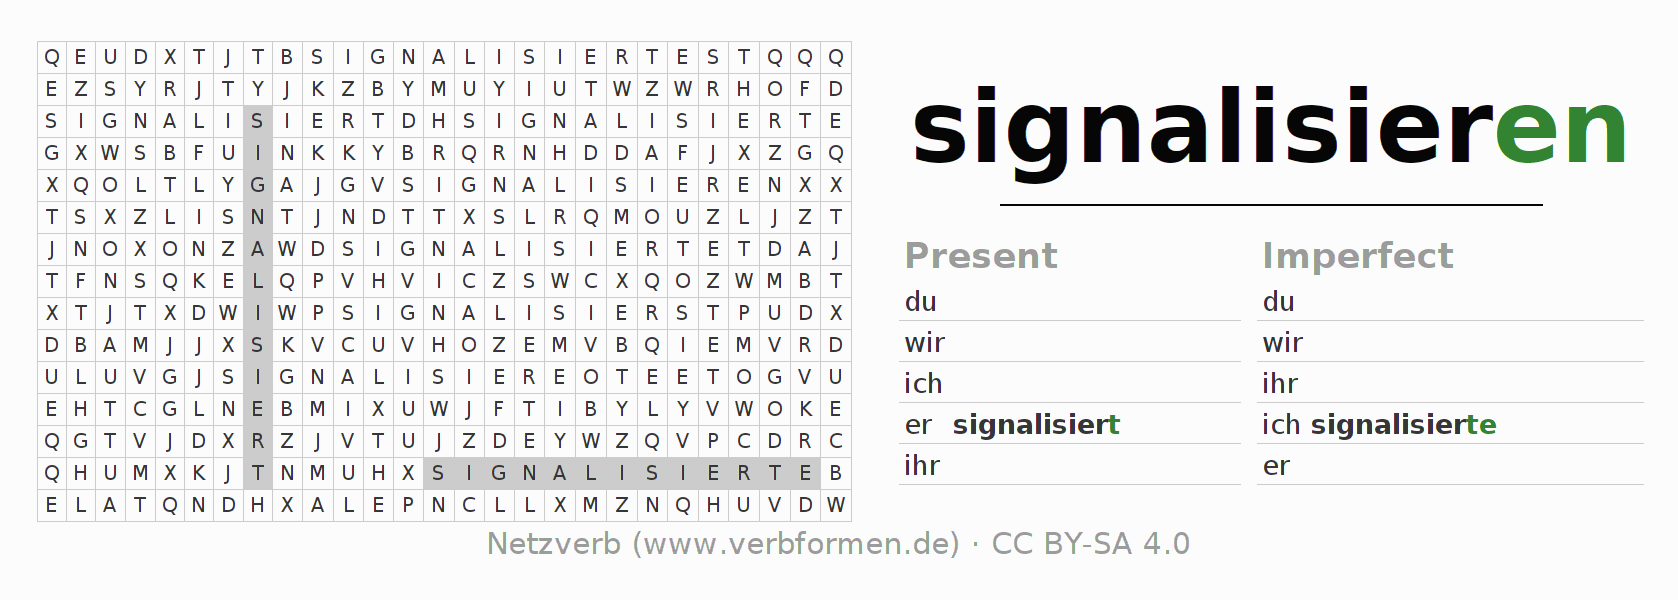 Word search puzzle for the conjugation of the verb signalisieren